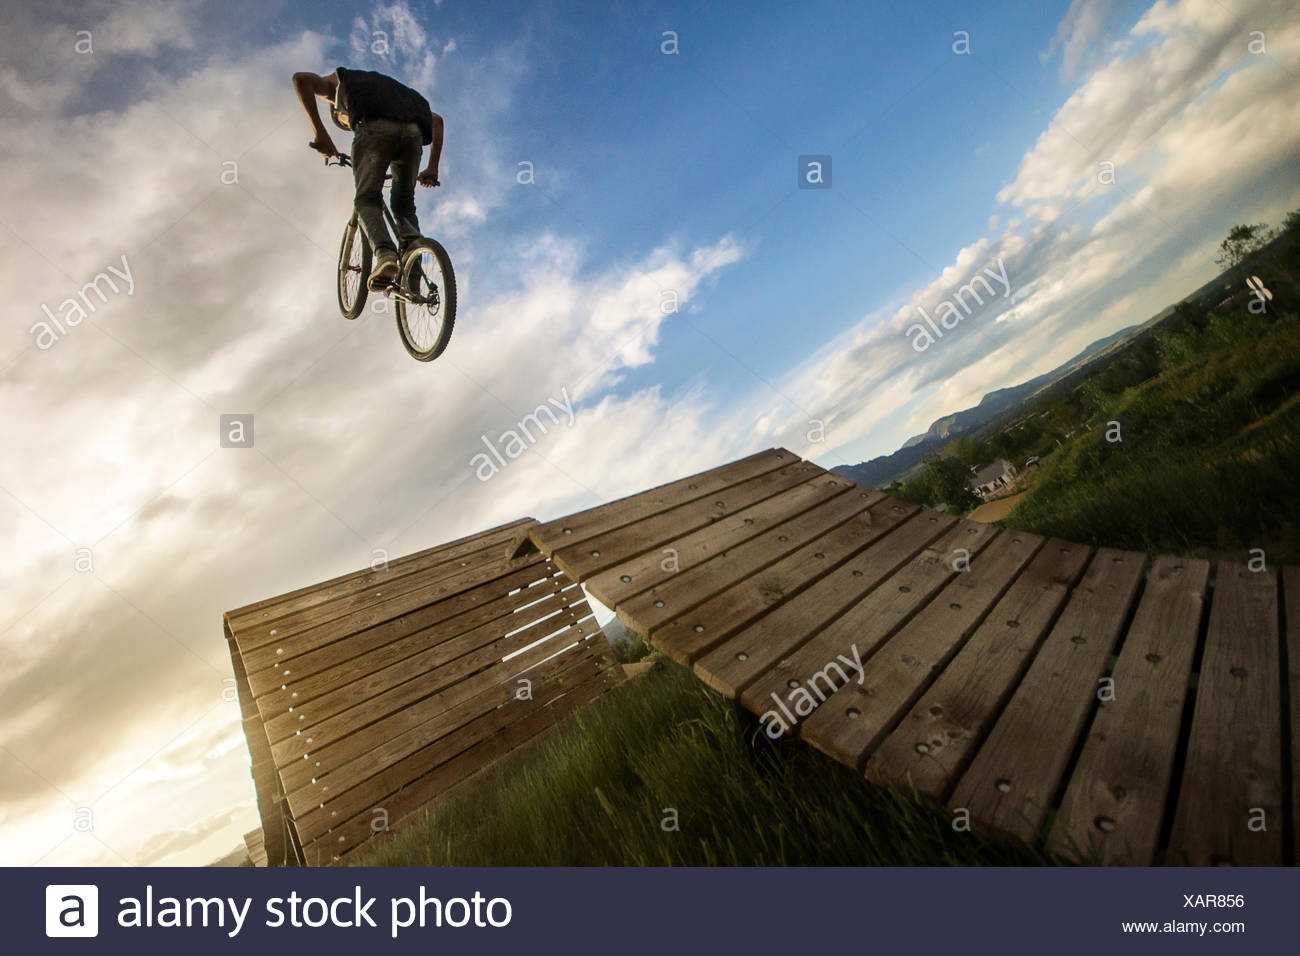 USA, Colorado, Boulder County, Boulder, Man jumping on bike - Stock Image